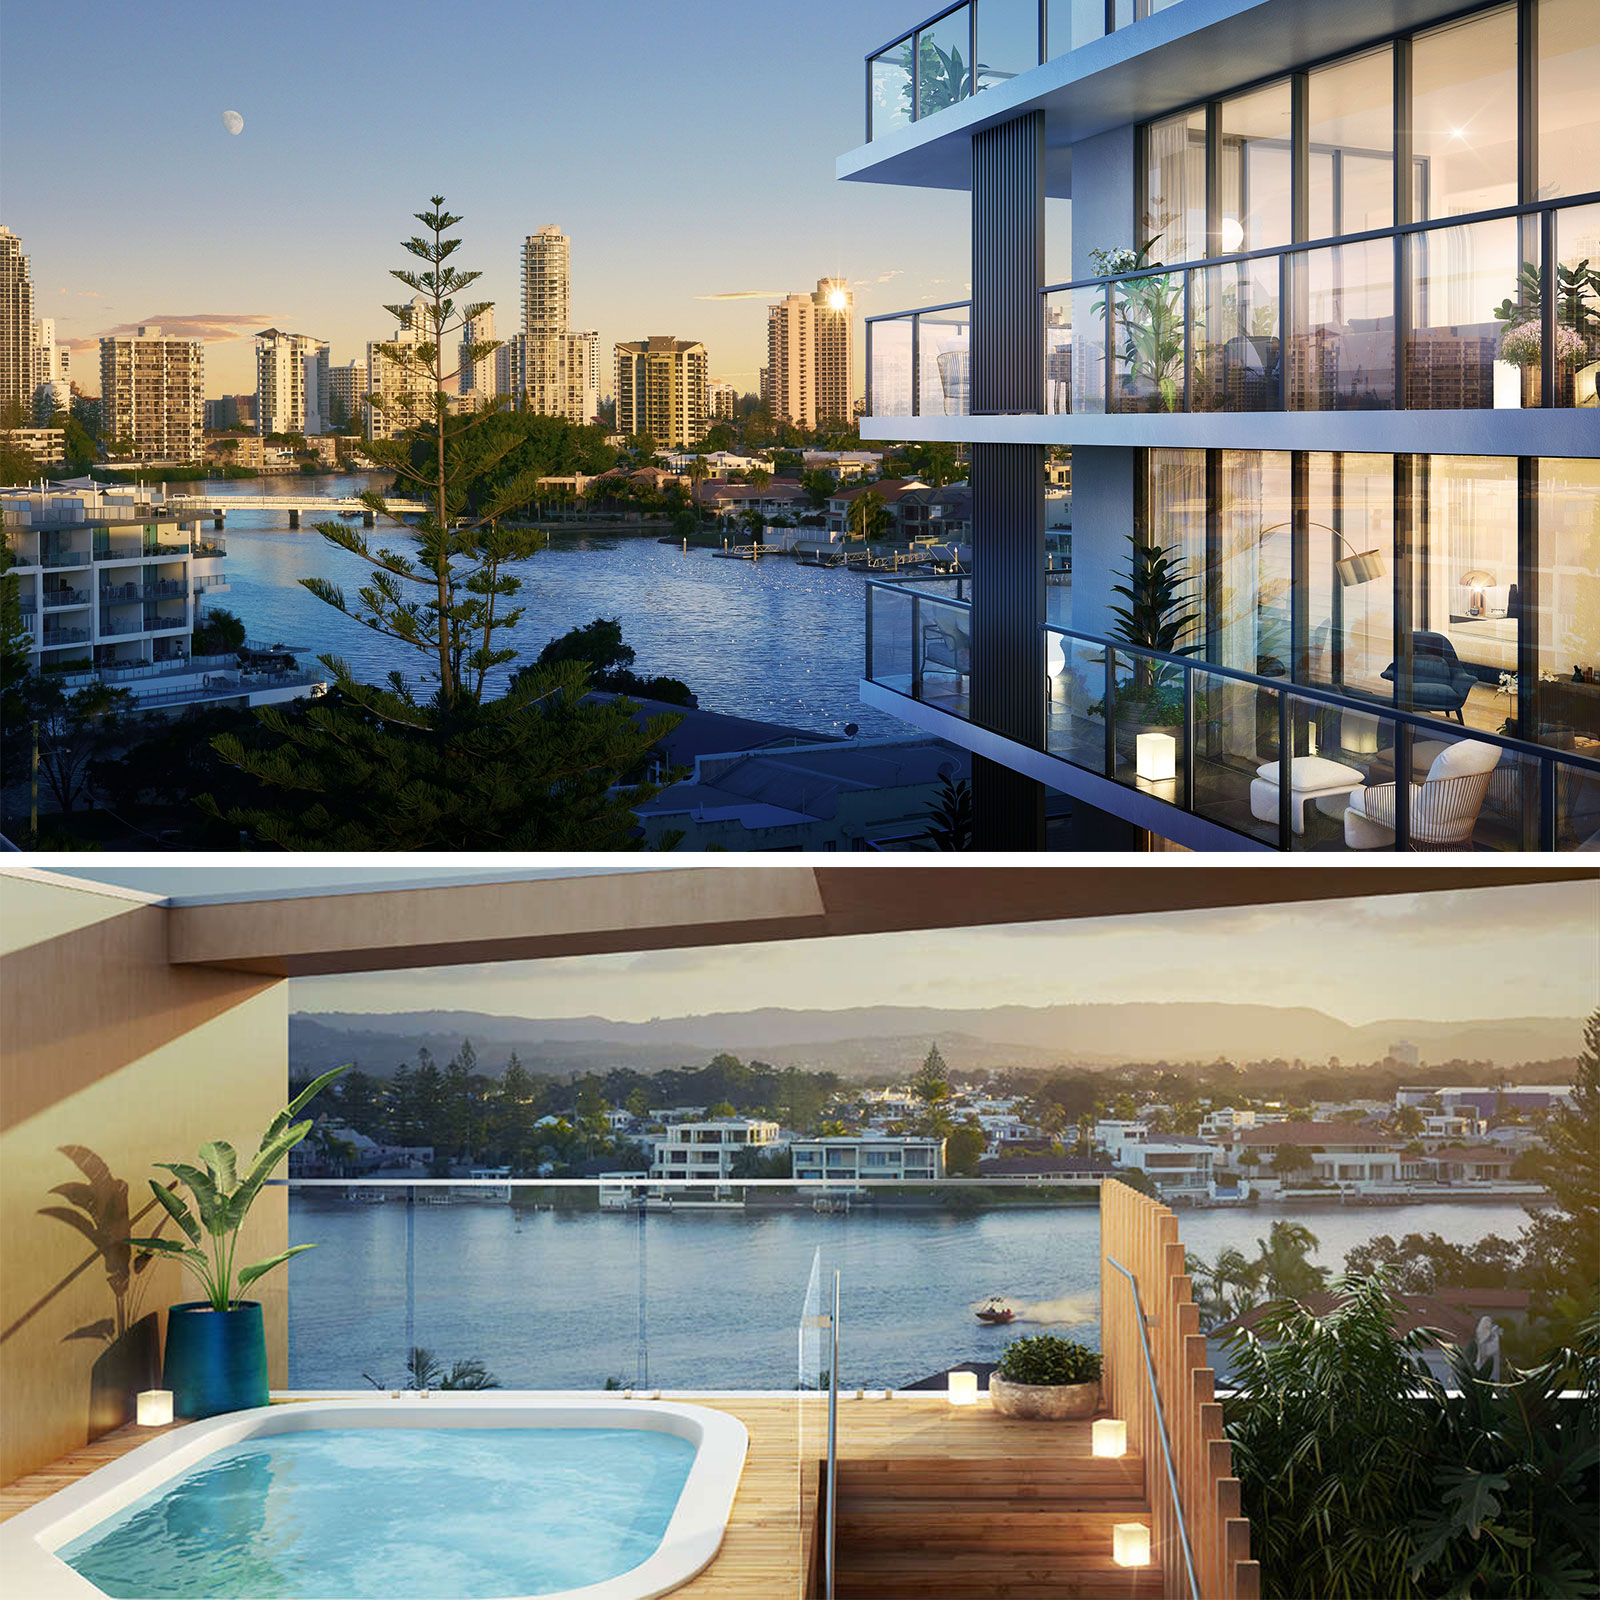 Peninsular's rooftop retreat will be an exclusive oasis featuring a gym, movie theatre and private dining lounge.